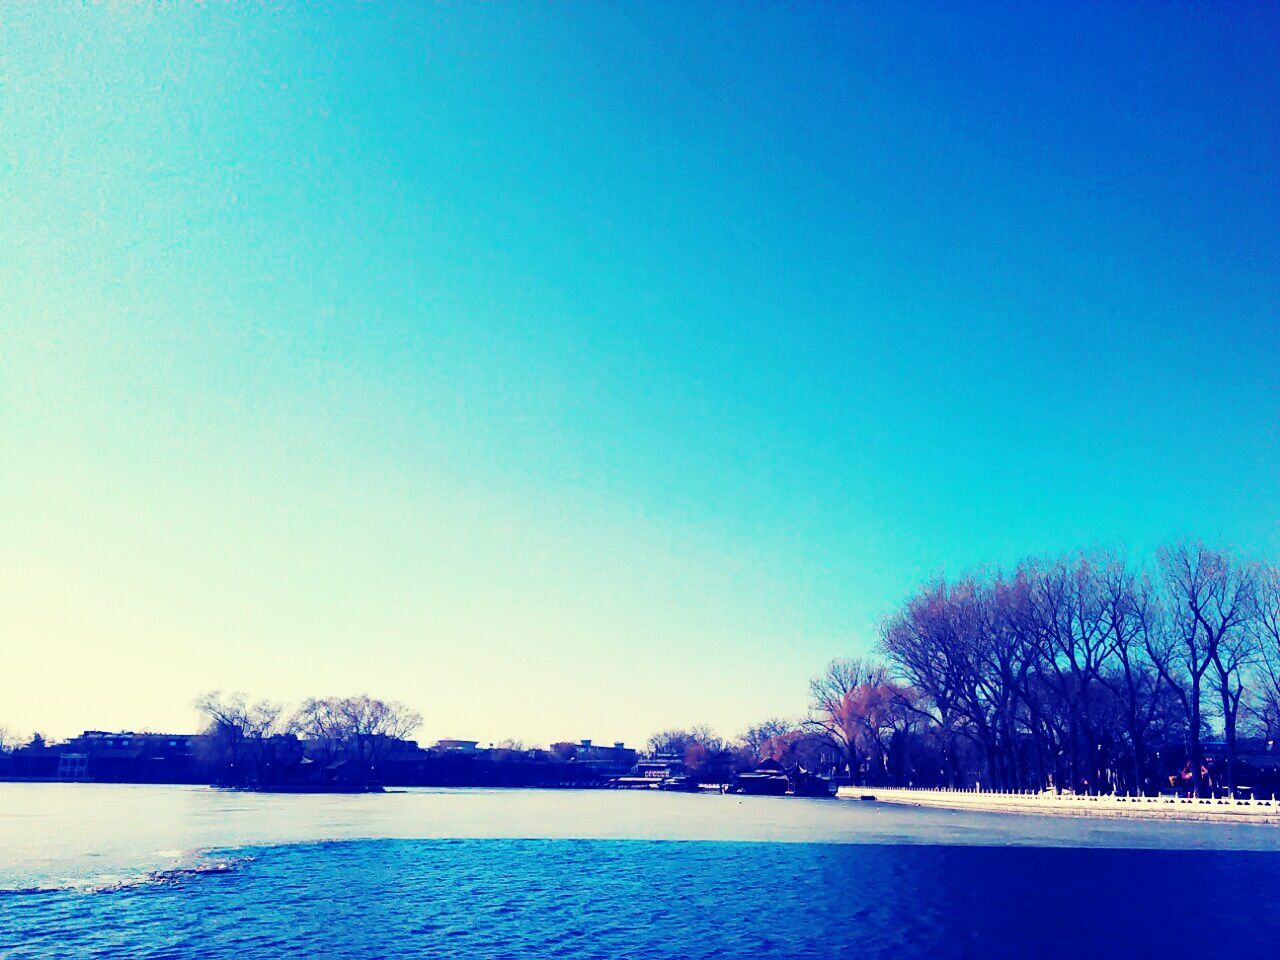 tree, clear sky, blue, copy space, lake, tranquil scene, scenics, tranquility, nature, outdoors, water, beauty in nature, no people, sky, landscape, day, view into land